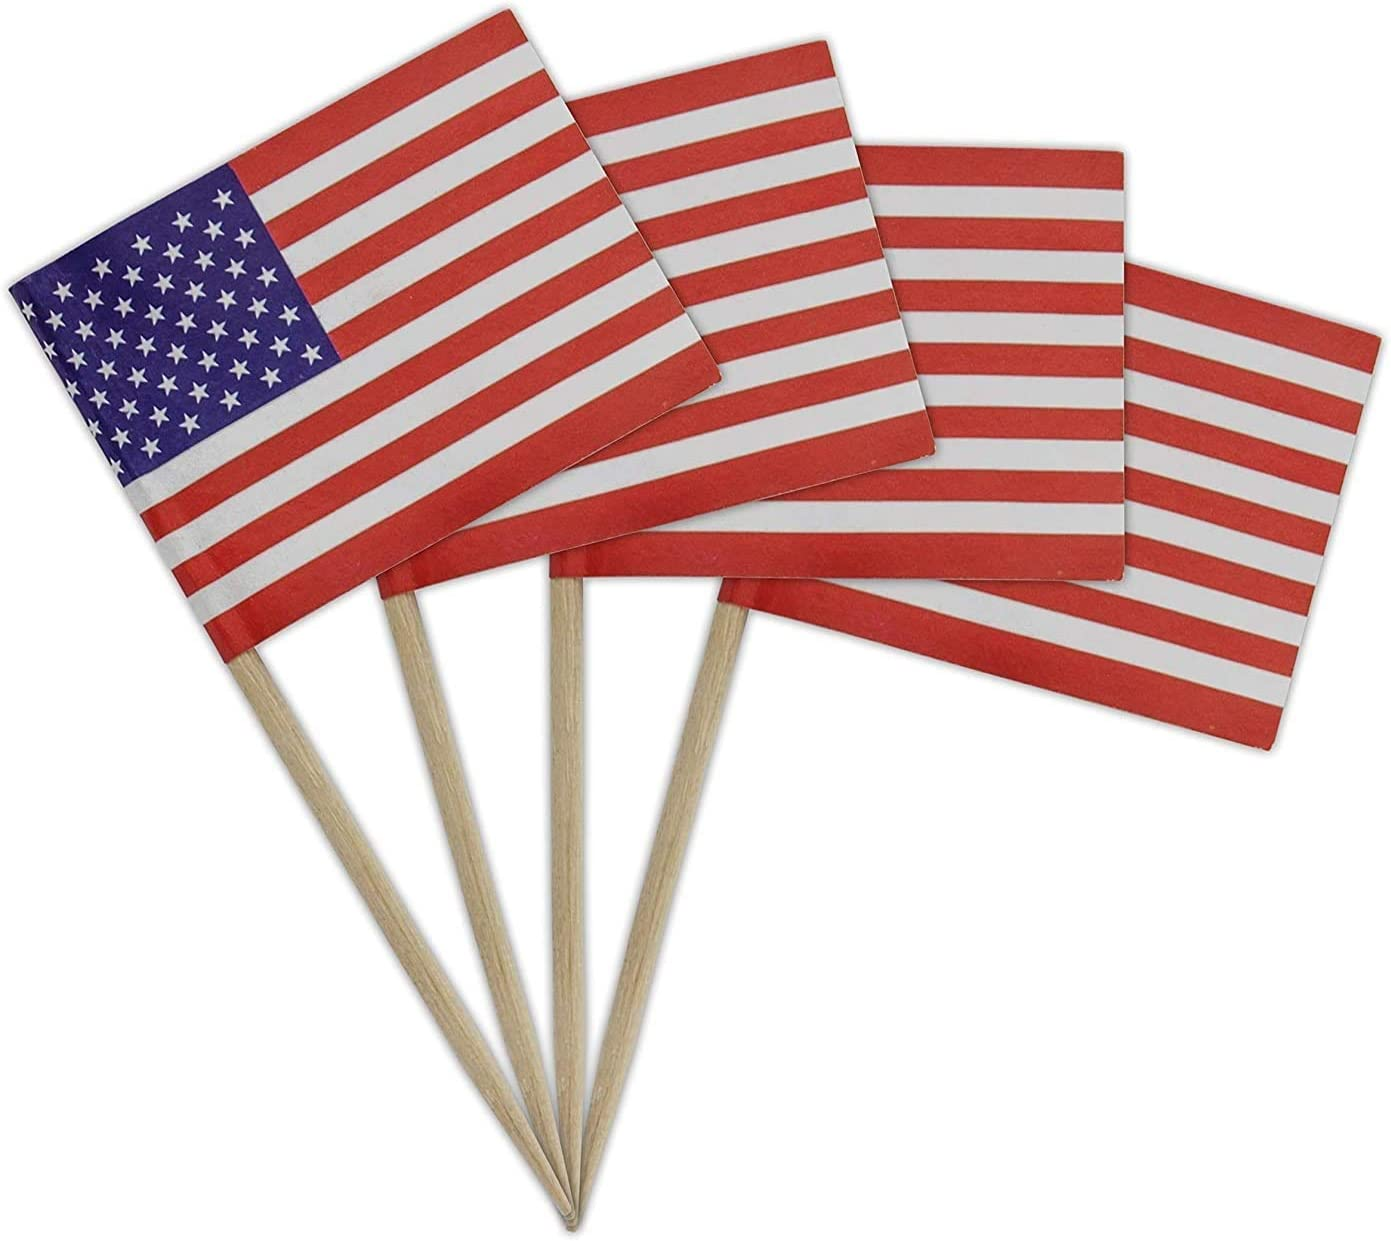 Ram-Pro Pack of 200 Decorative American Flag Wood Picks - USA Flag Picks, Mini American Stick Flag Food Toothpicks for Flag Day - Party Decorations Hand Held Mini Flag Decorative Wood Picks